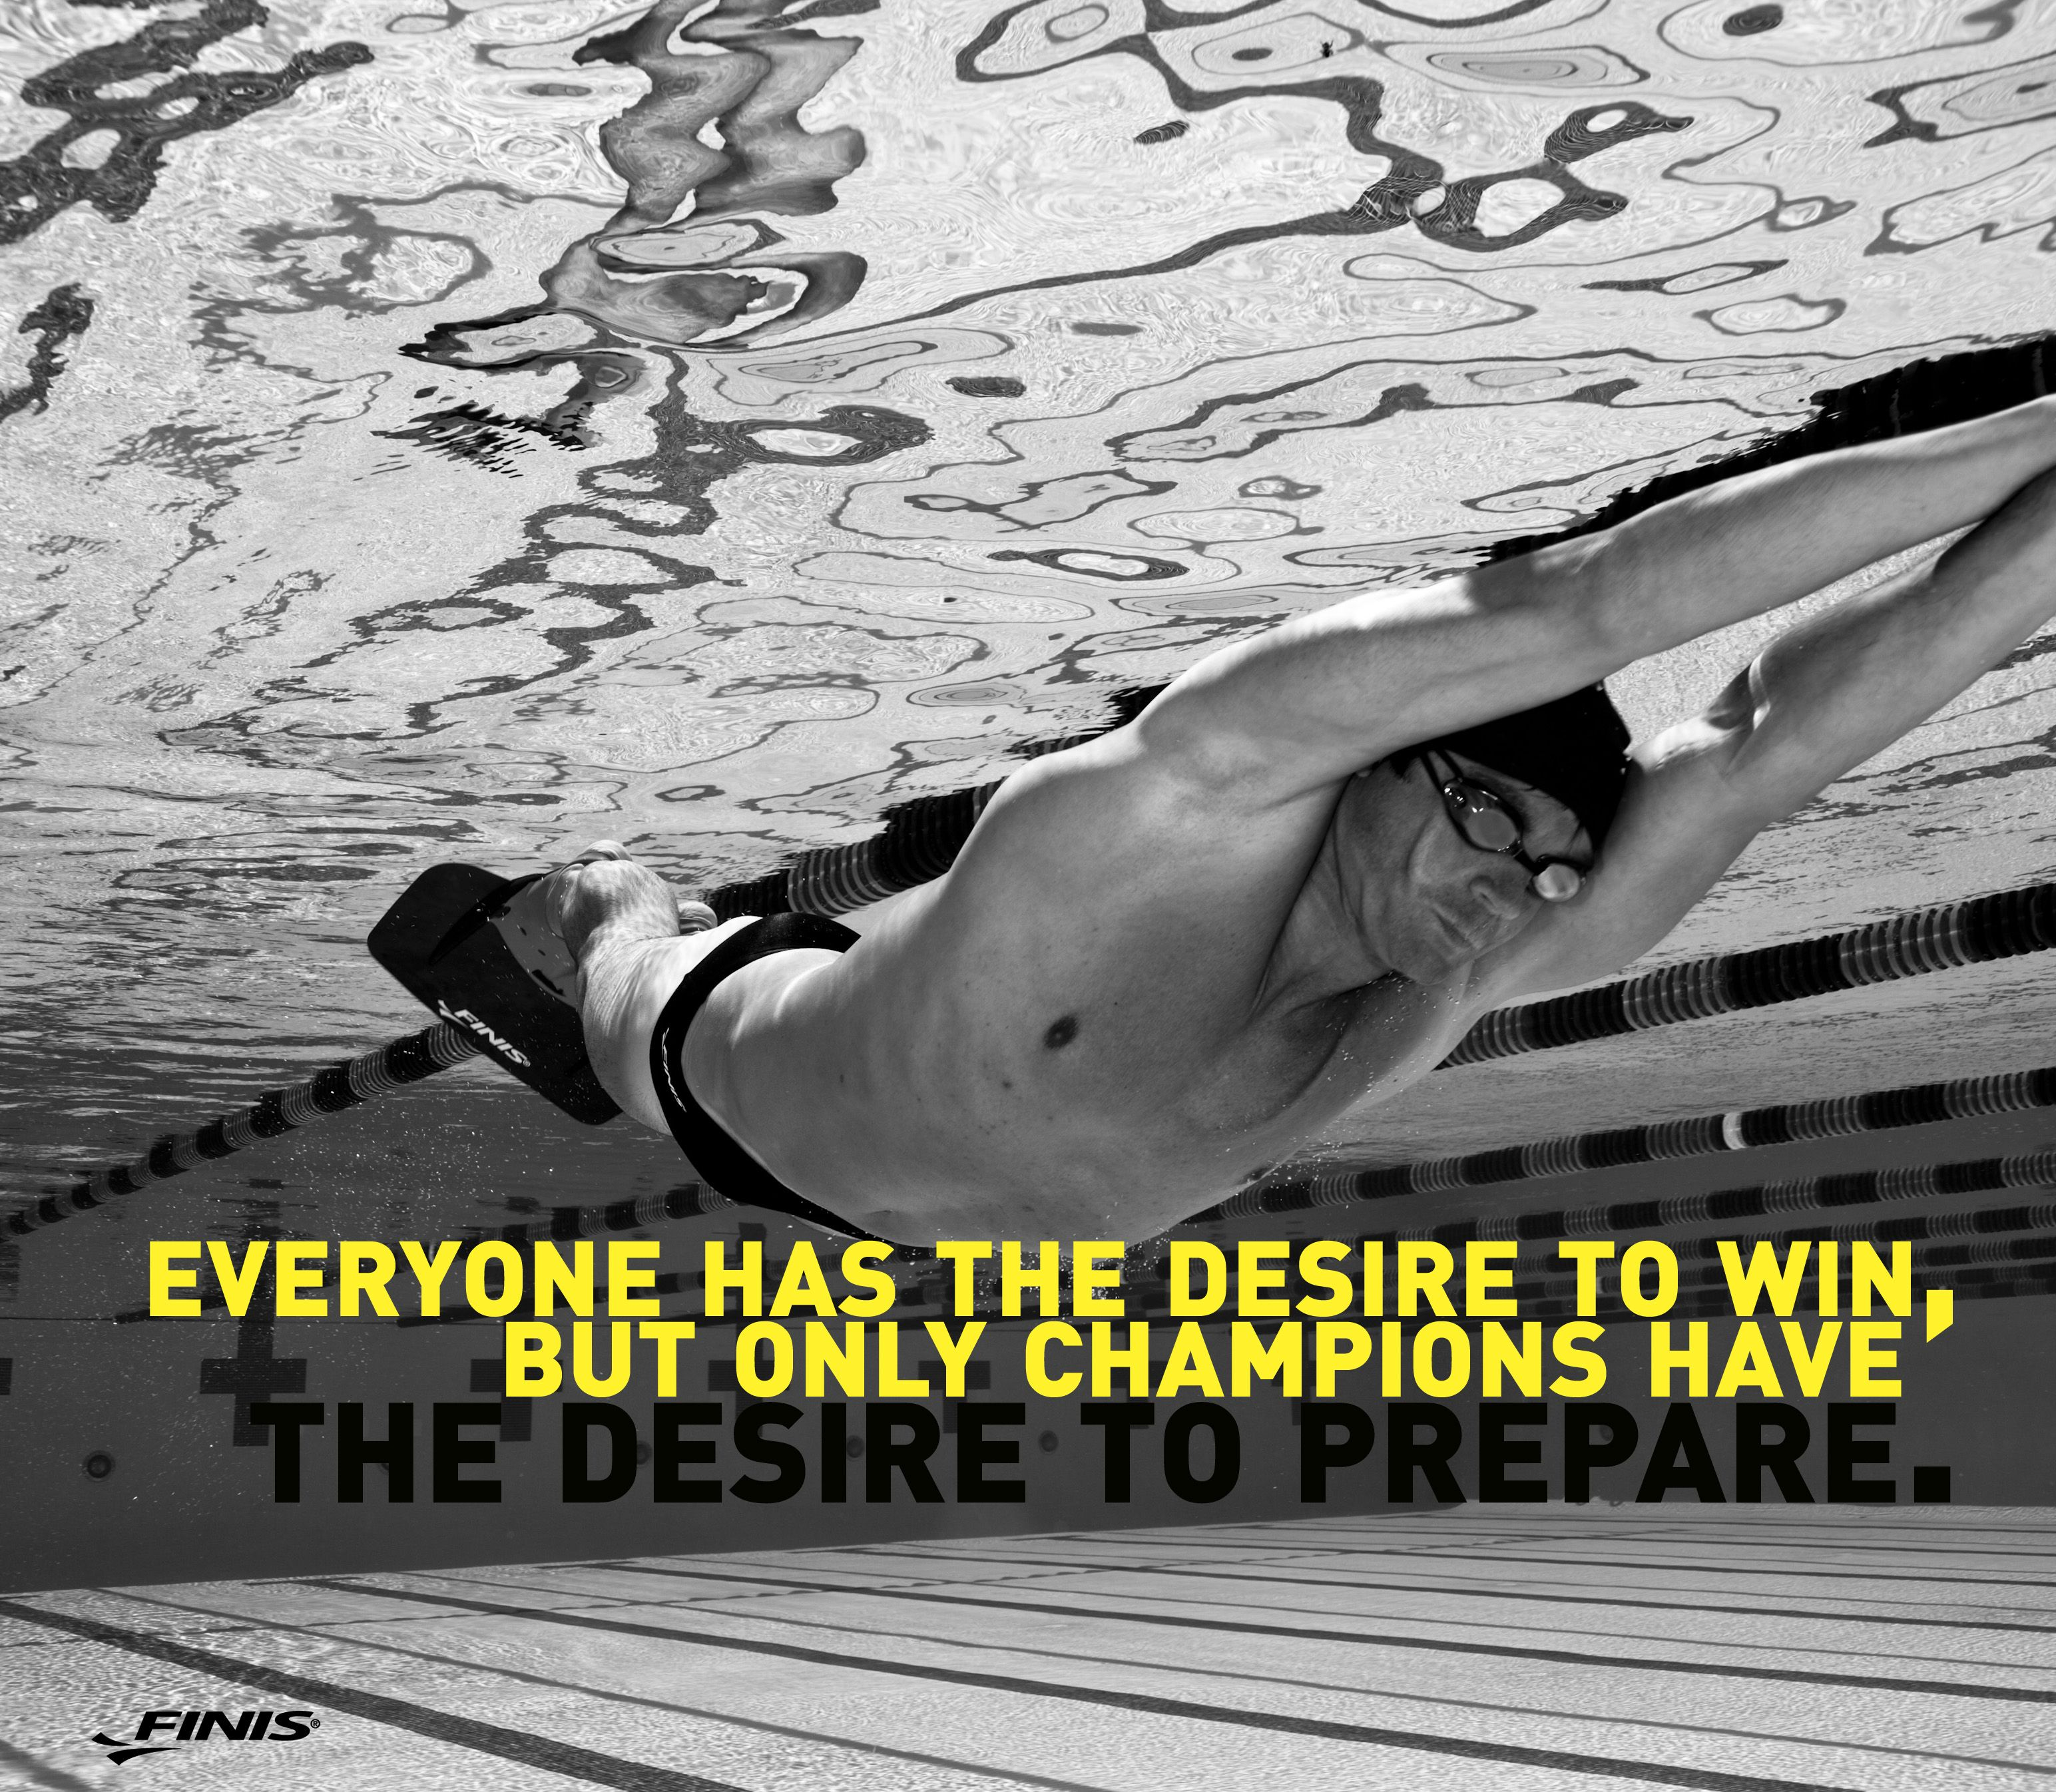 The desire to win is nothing without the desire to prepare. #traintowin #trainsmarter